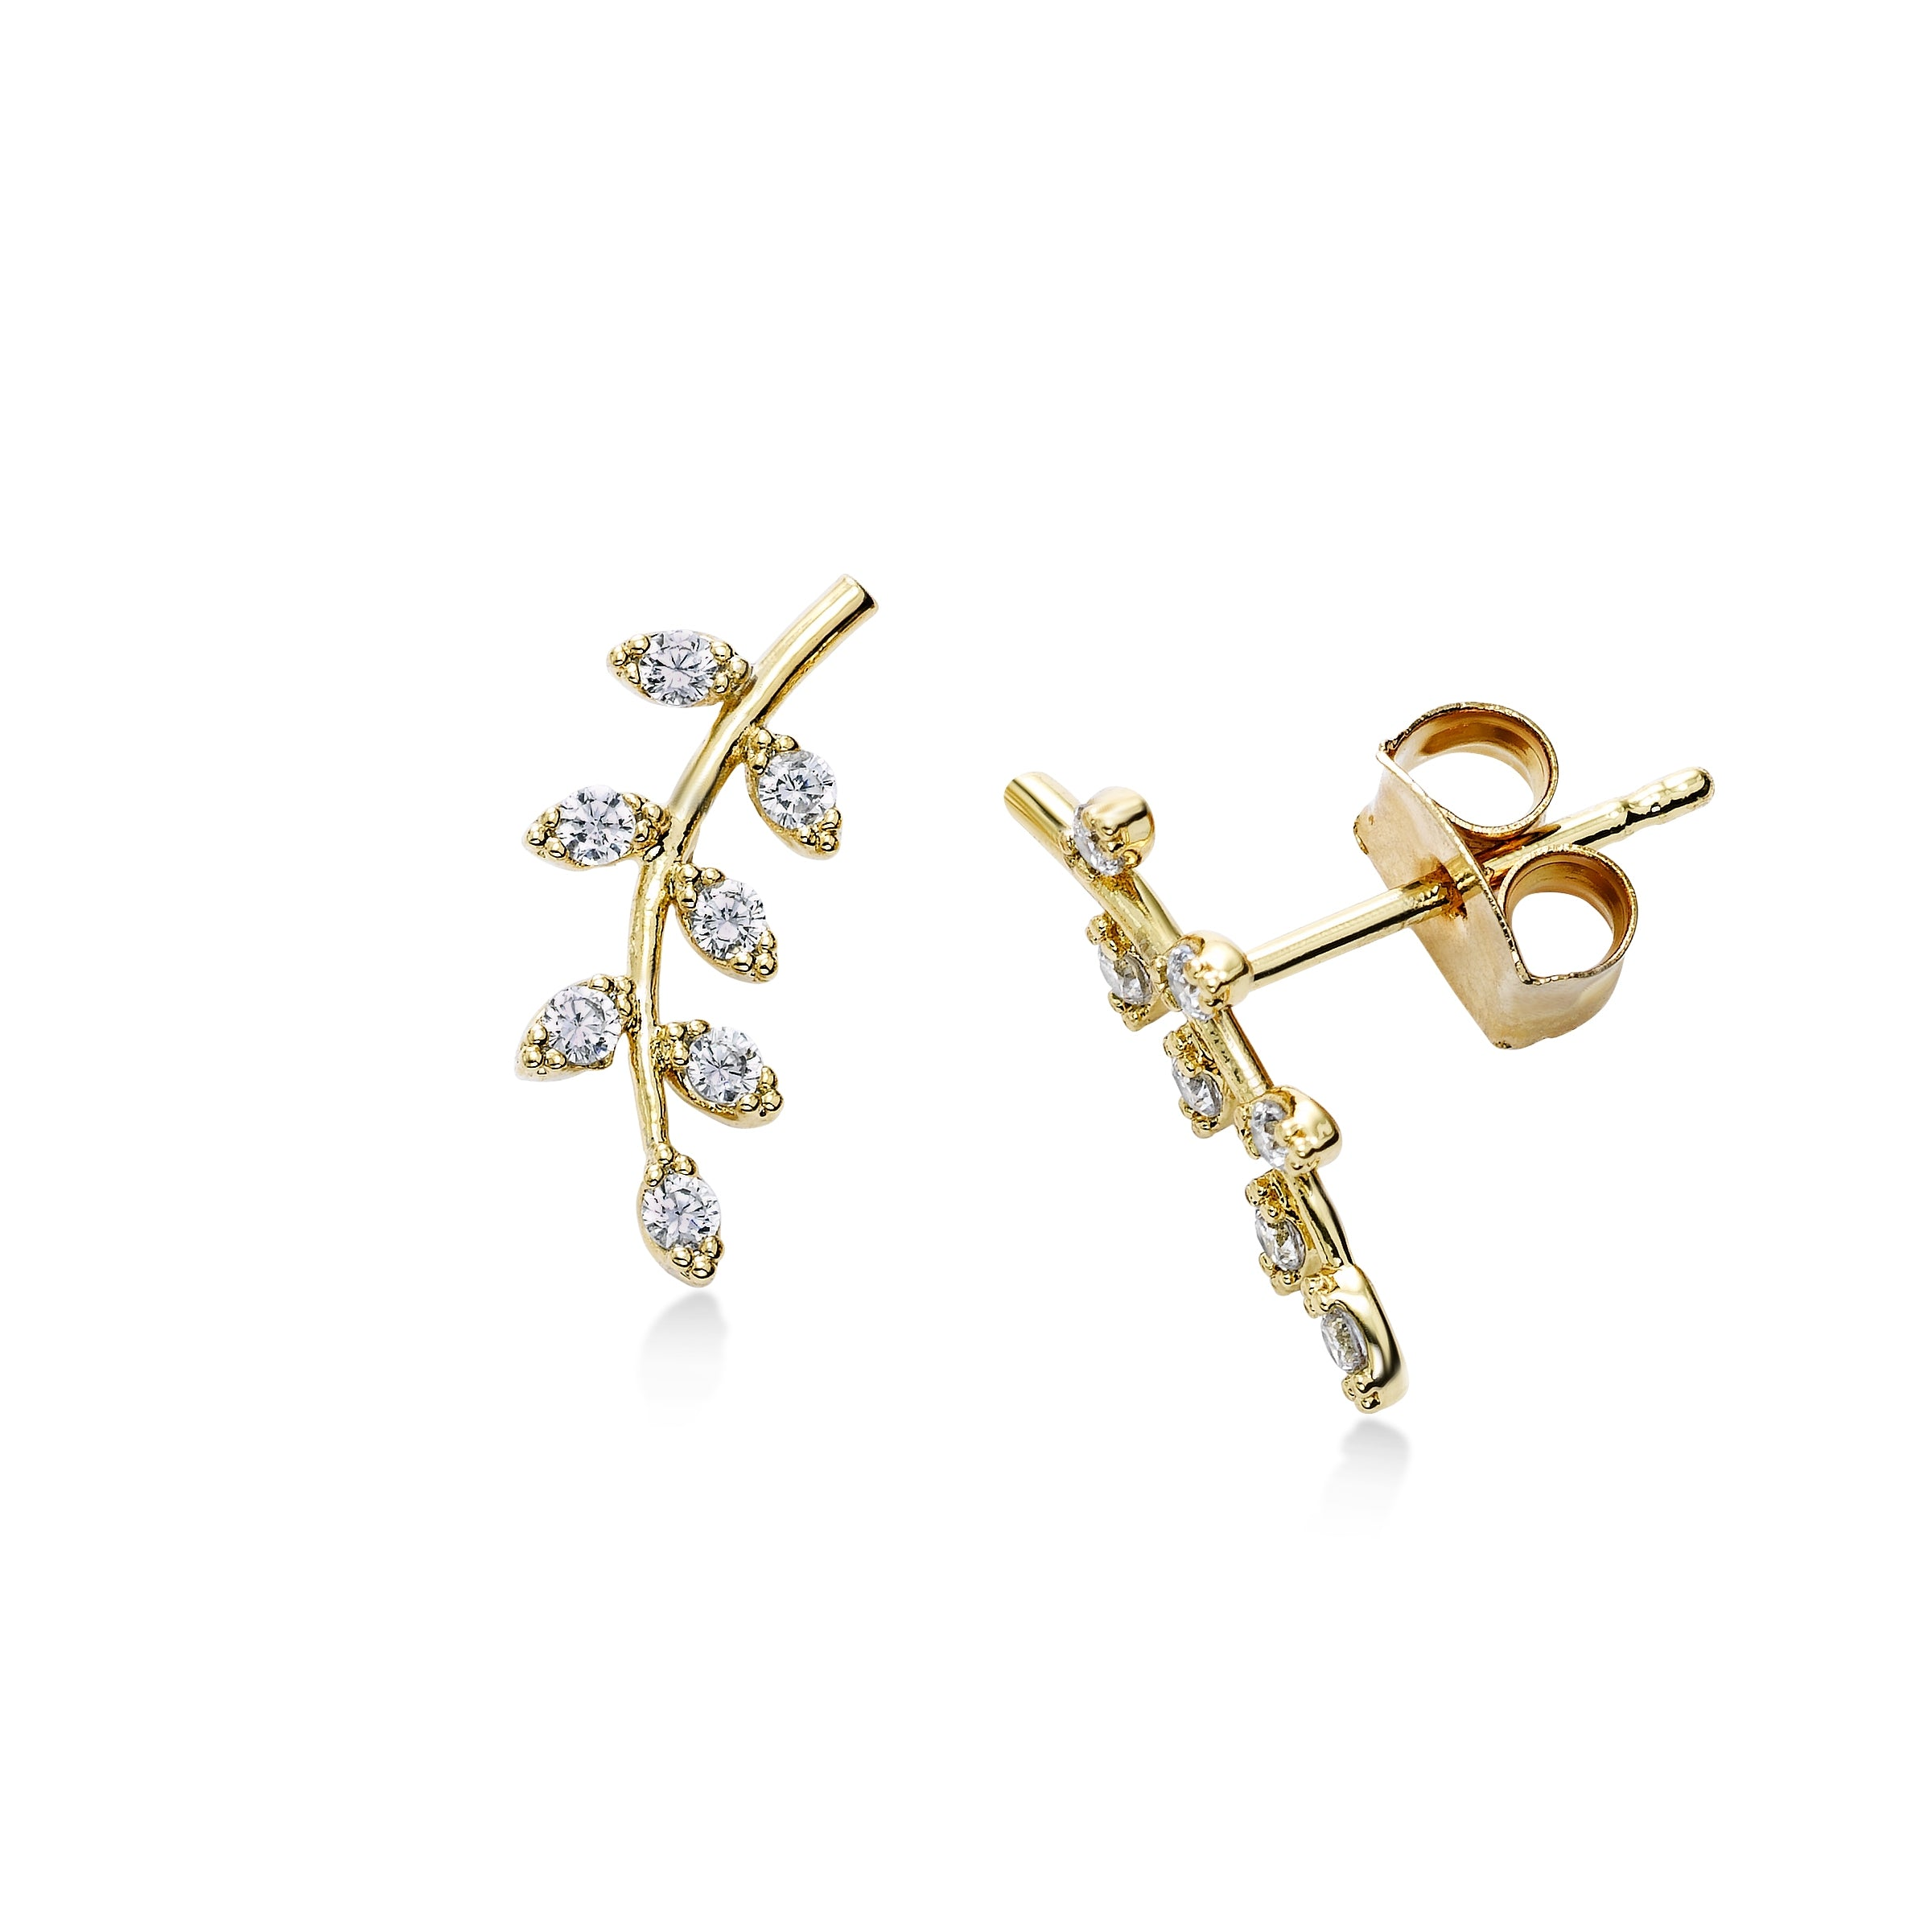 CZ Leaf Stud Earrings, Gold Tone, by Tai Design